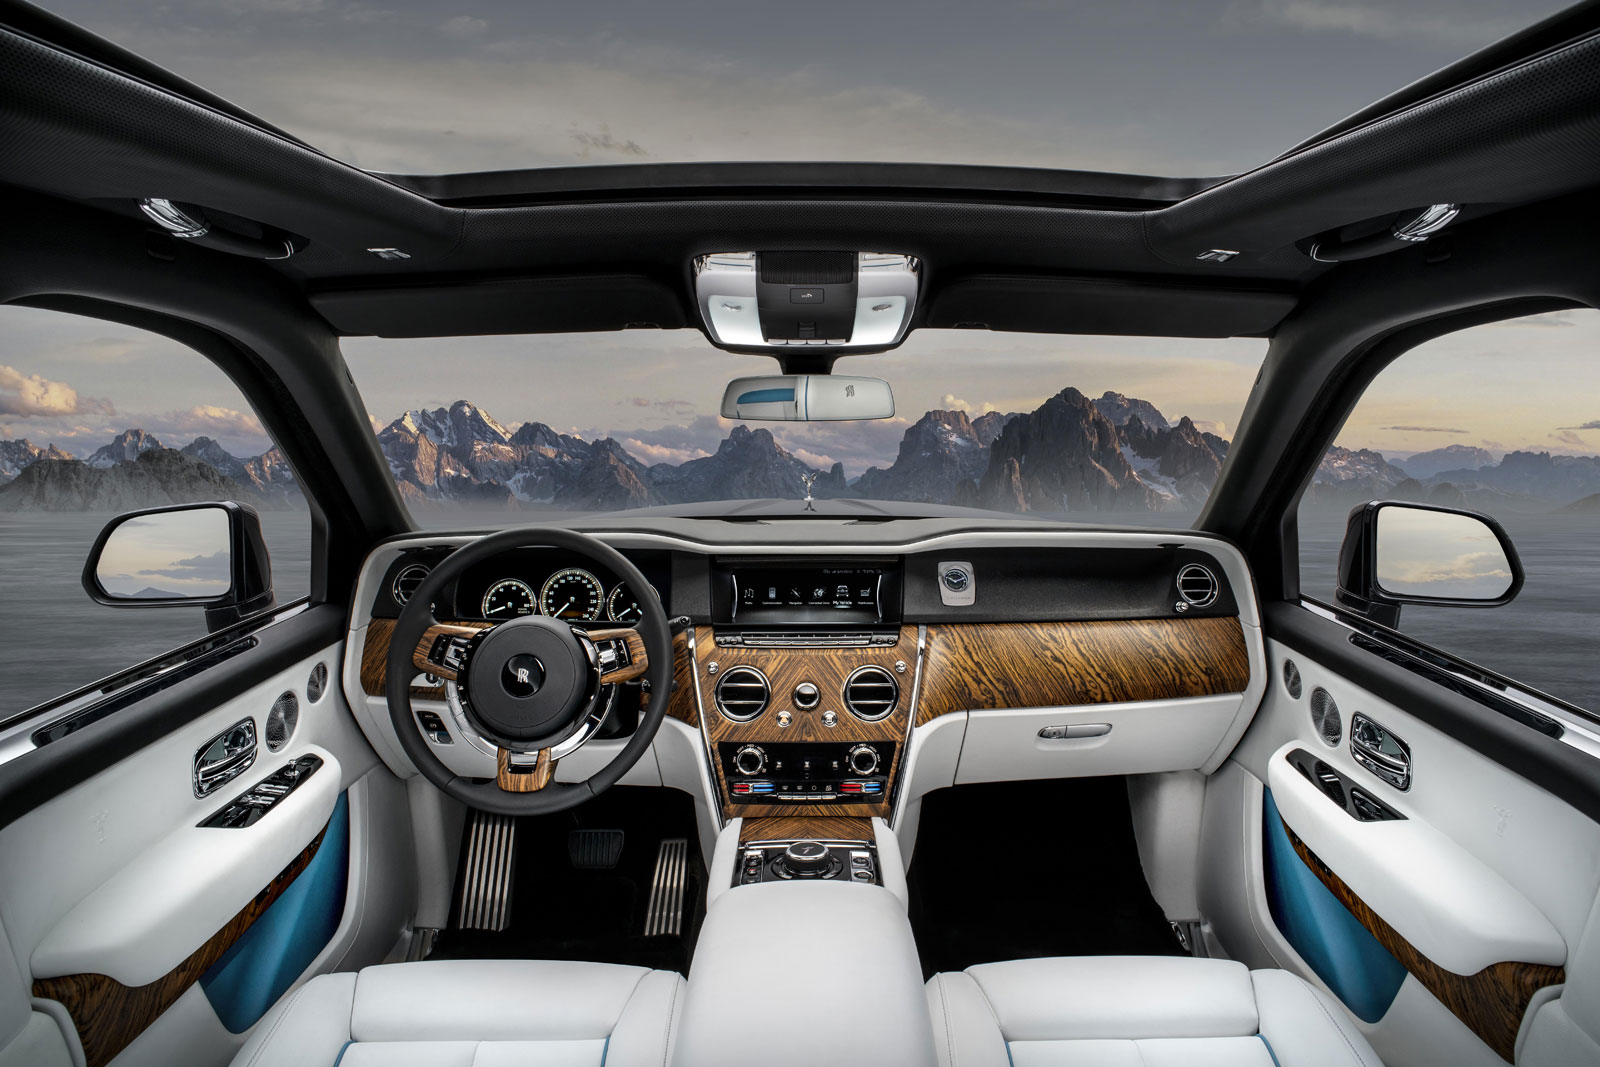 Rolls Royce Cullinan Tg Interior Car Body Design